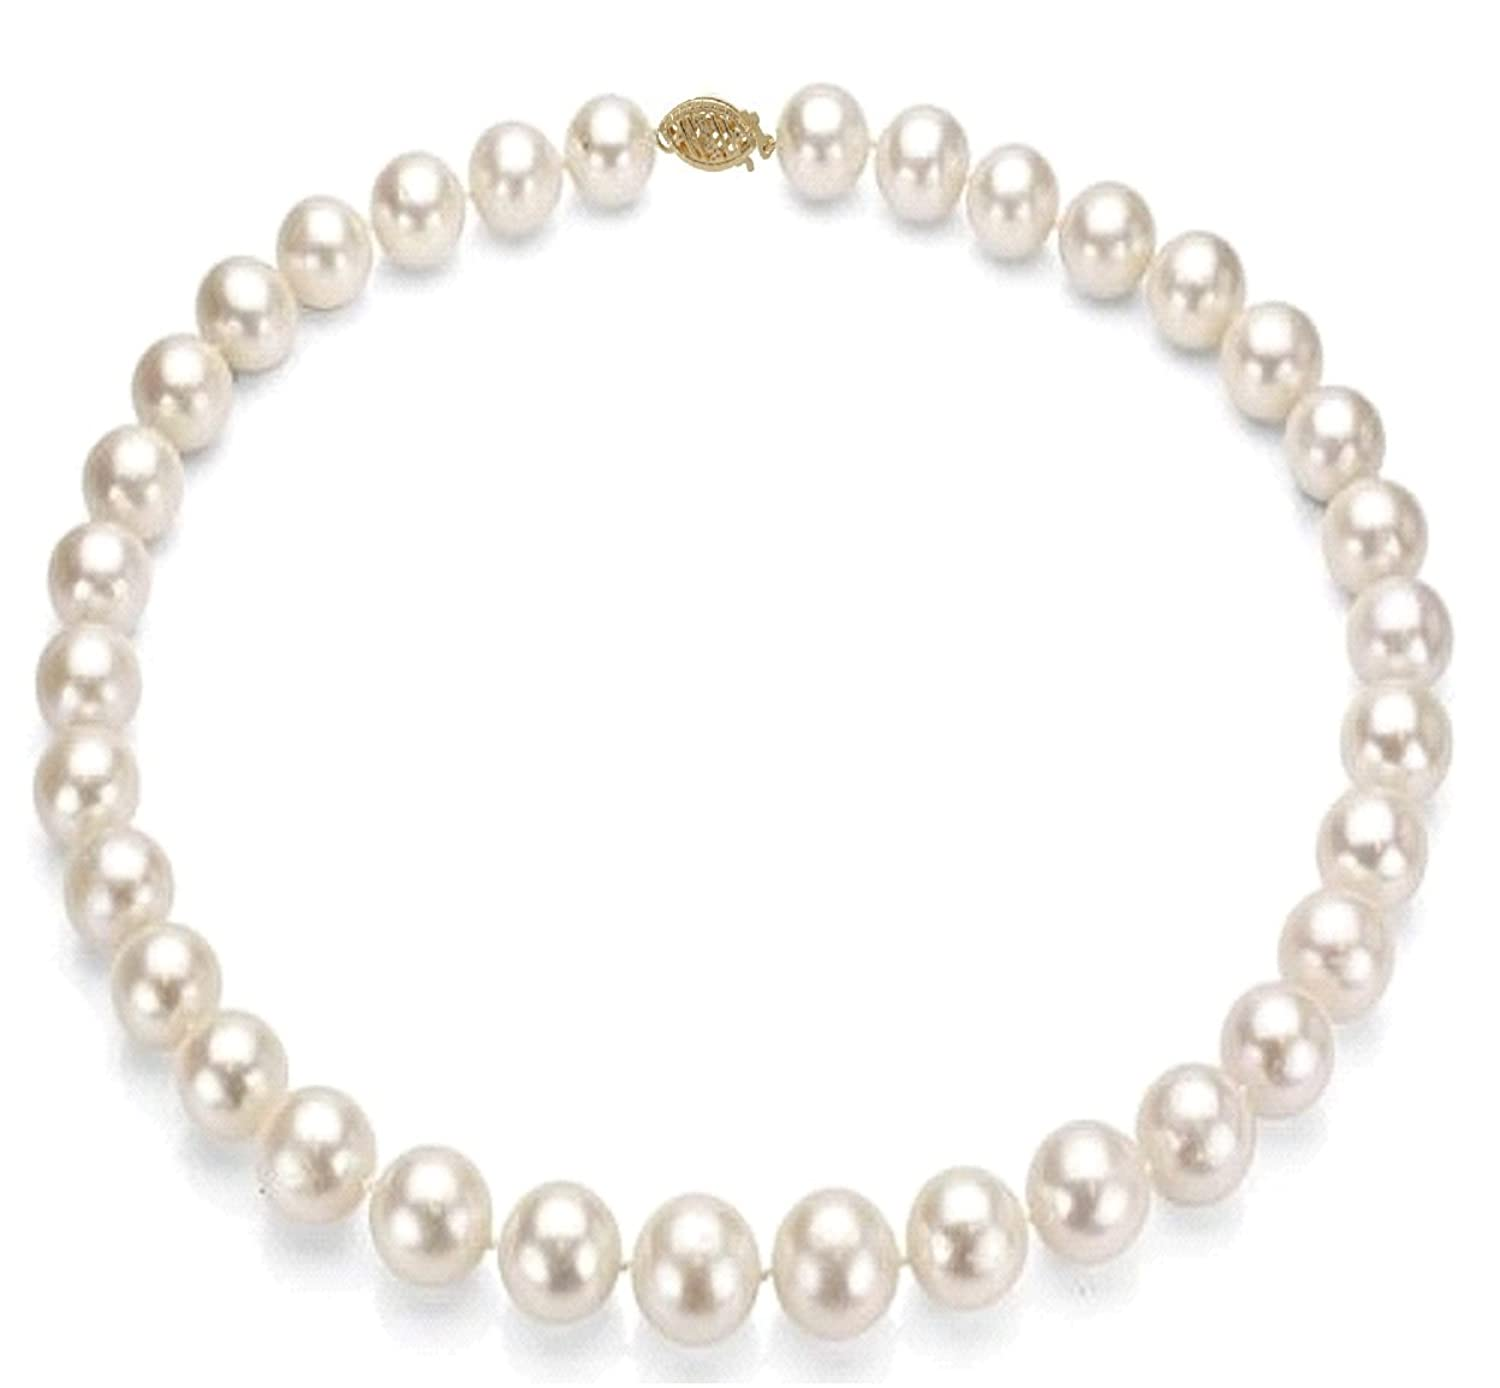 14k Gold 10-11mm White Freshwater Cultured Pearl Necklace - Bridal Wedding Gift